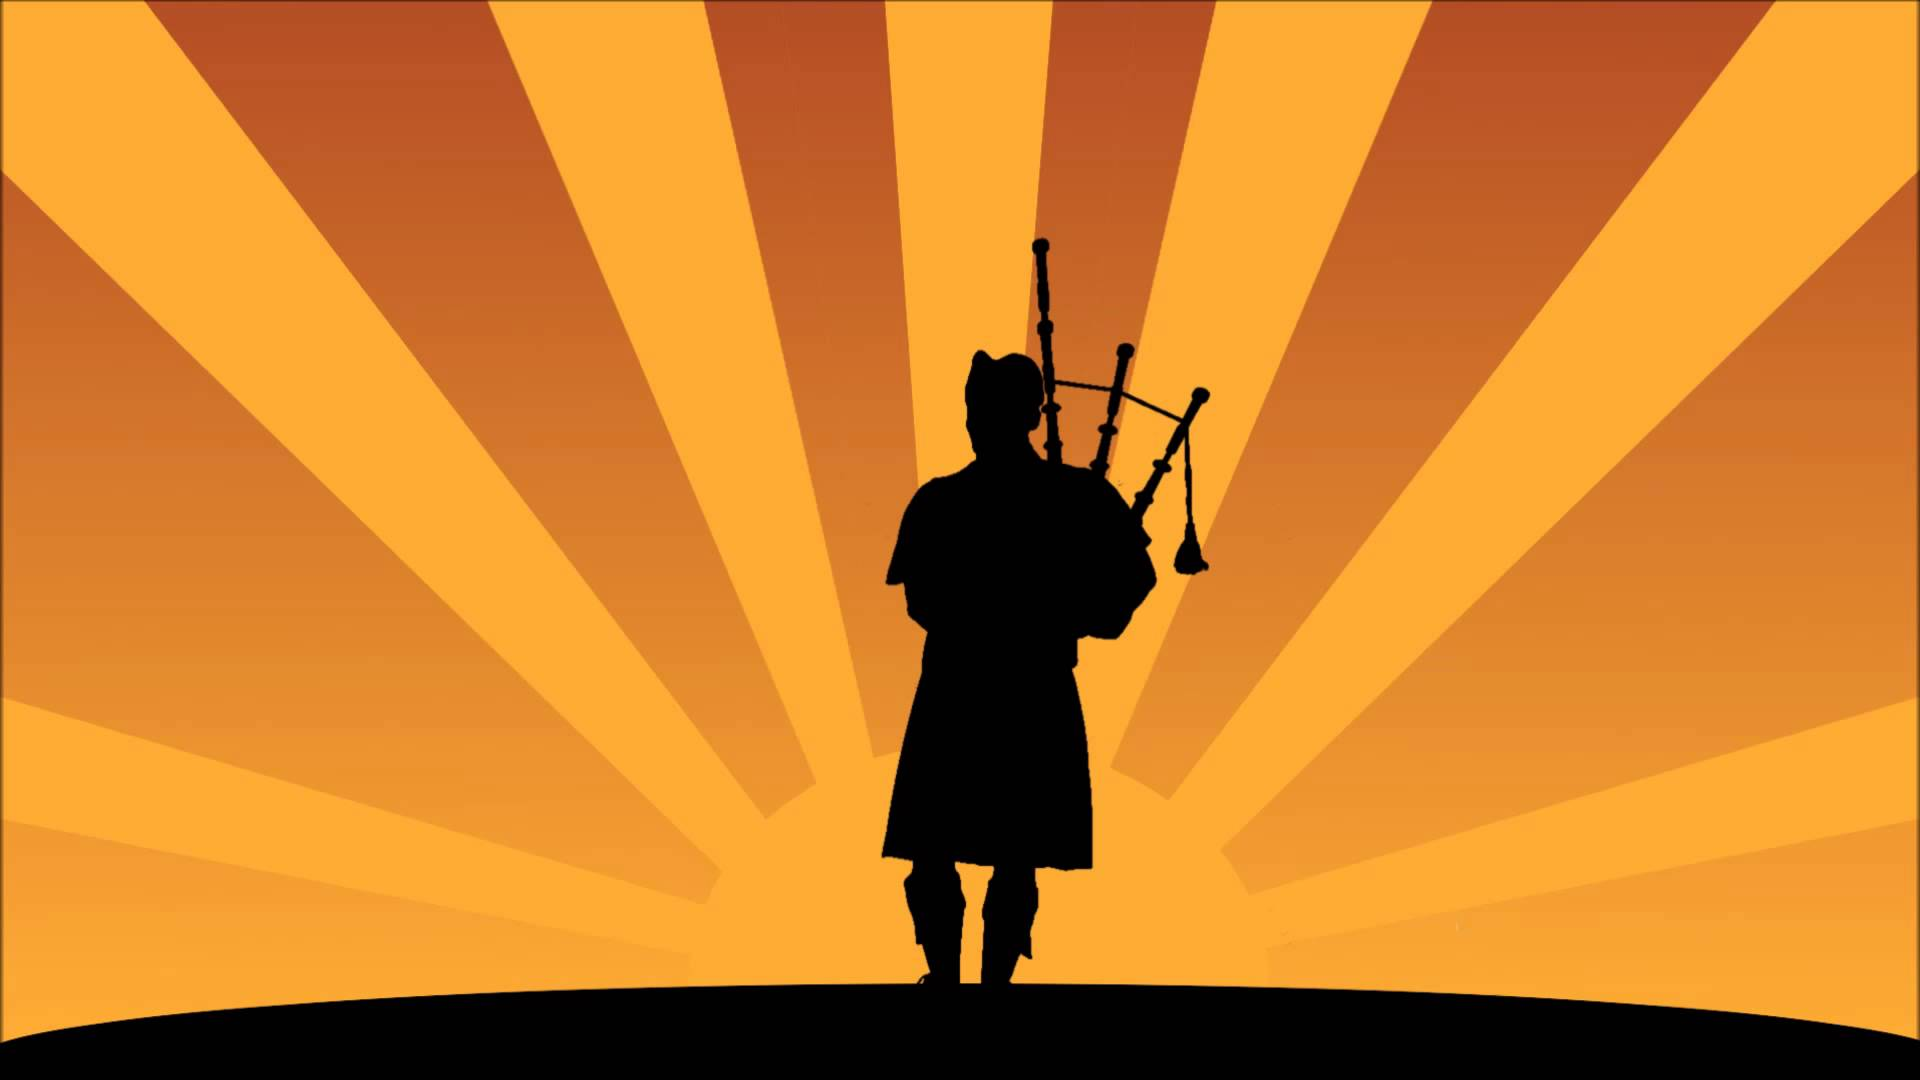 Bagpipe Music Famous Bagpipe Songs to Remember in 2019 1920x1080